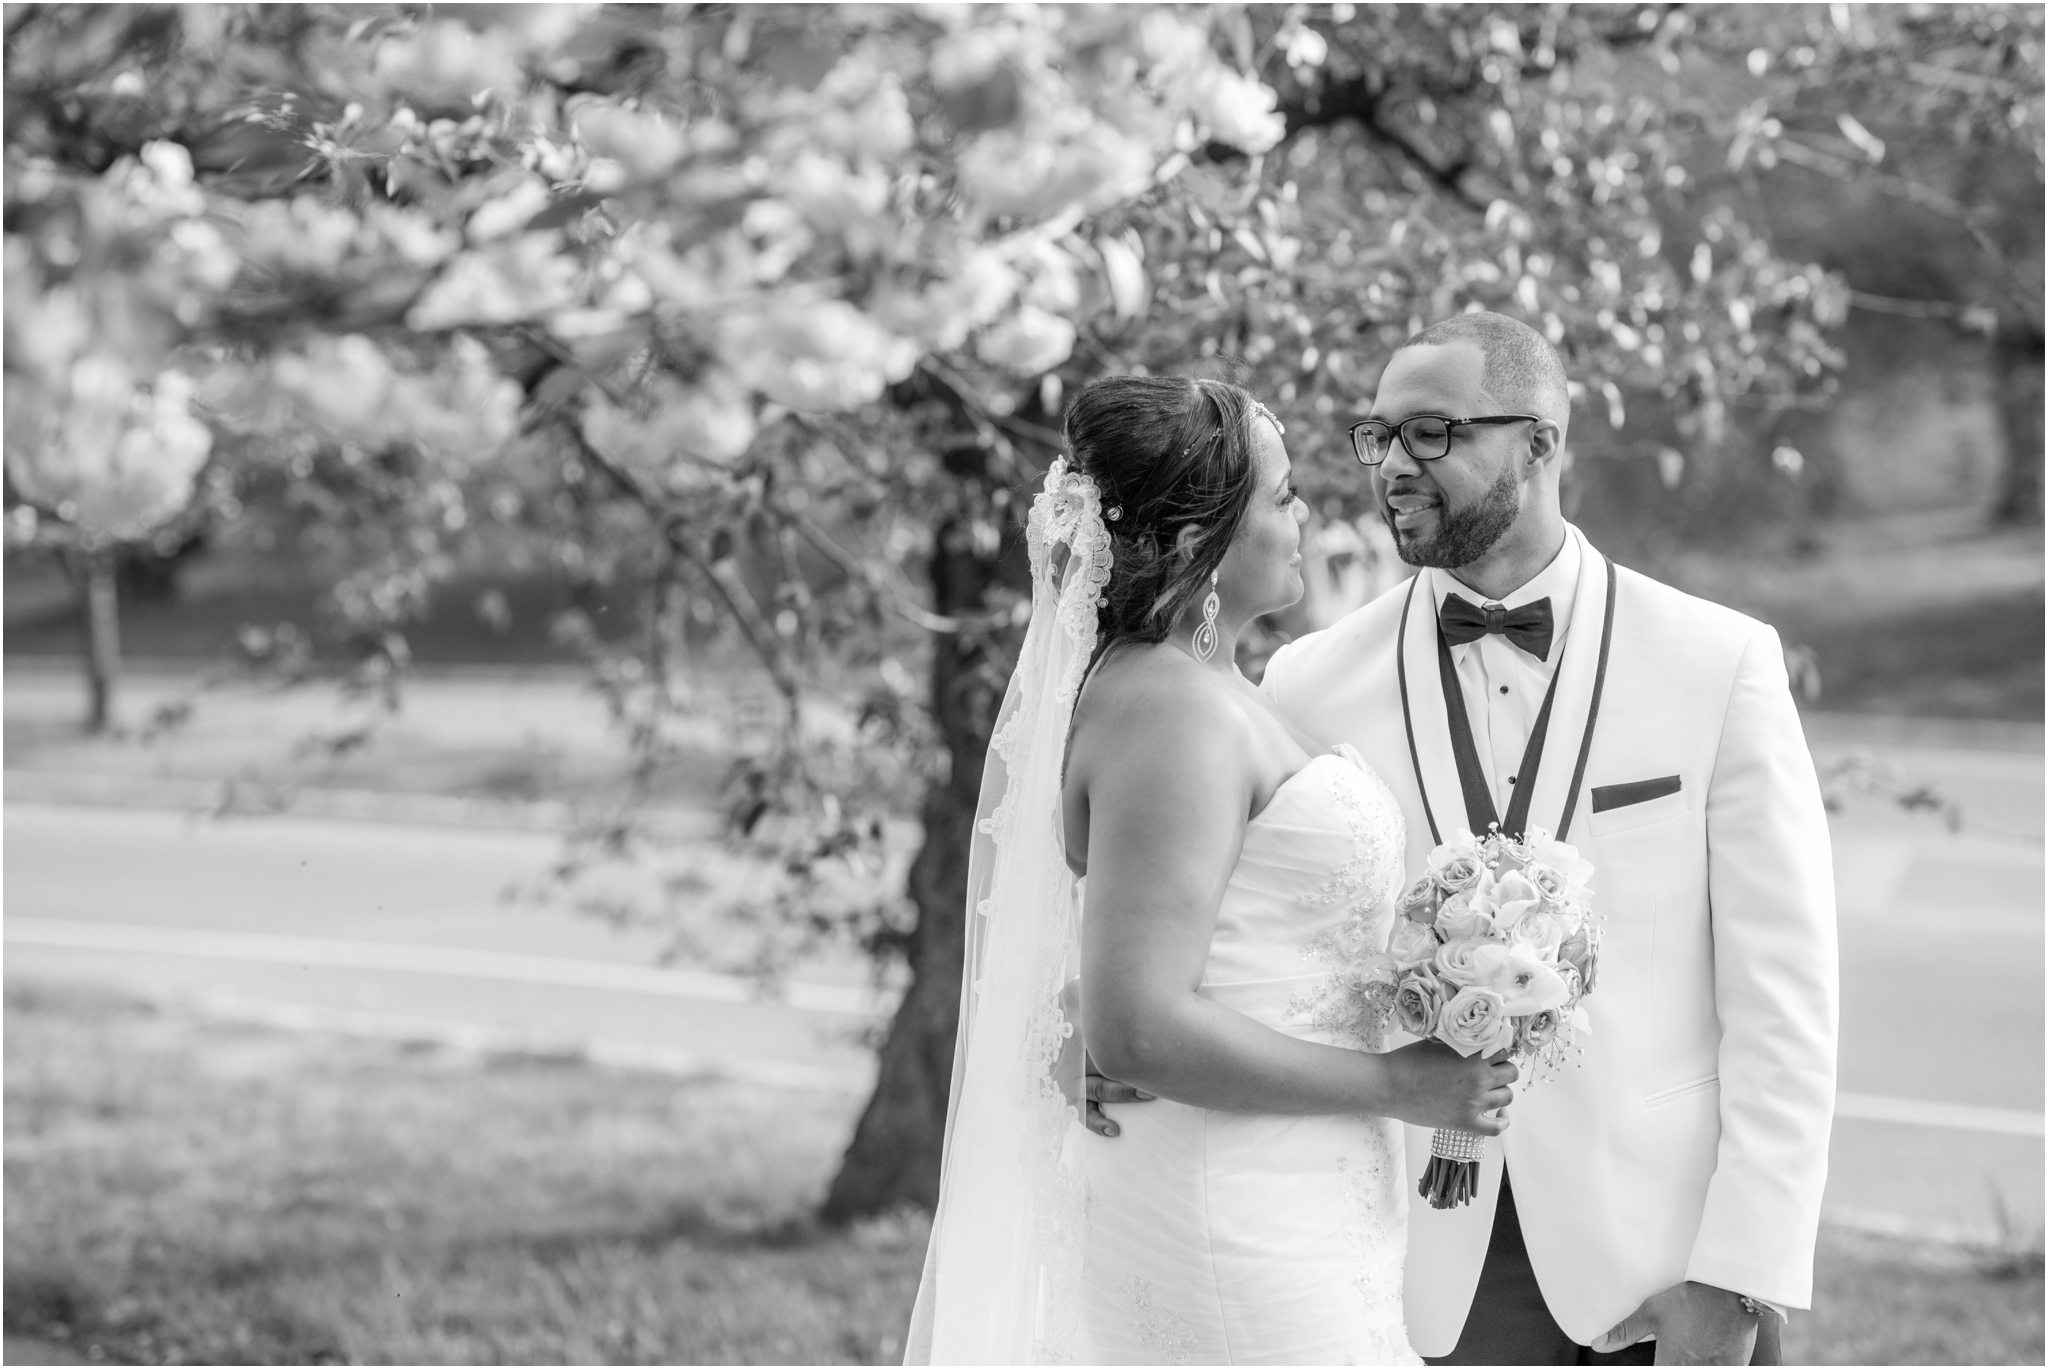 jaclyn-auletta-photography-blog-north-carolina-wedding-photographer-blogger_0043.jpg